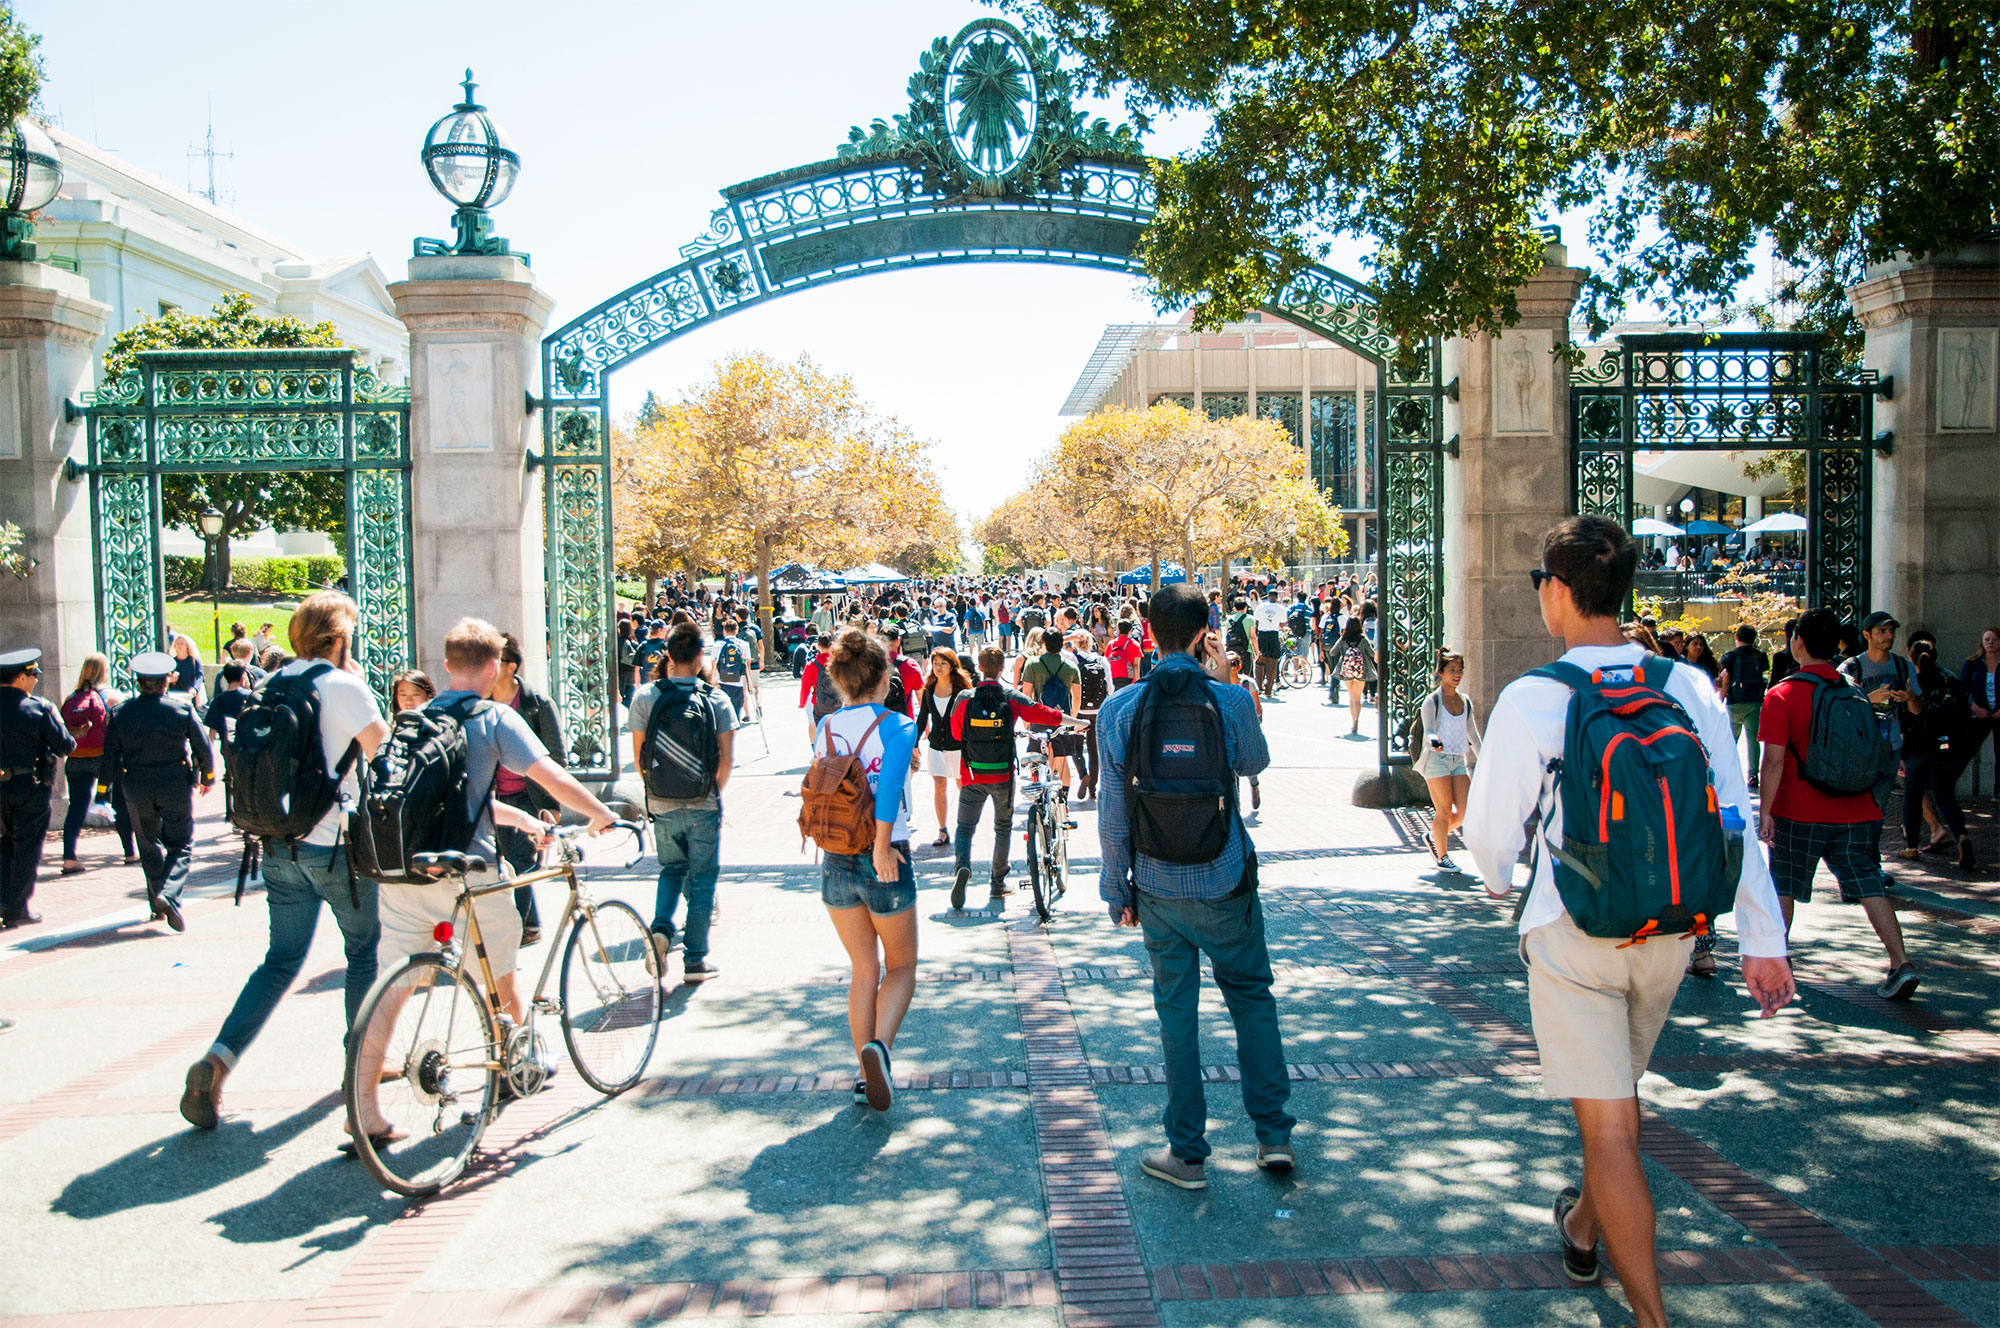 Students walking under Sather gate on the Berkeley campus